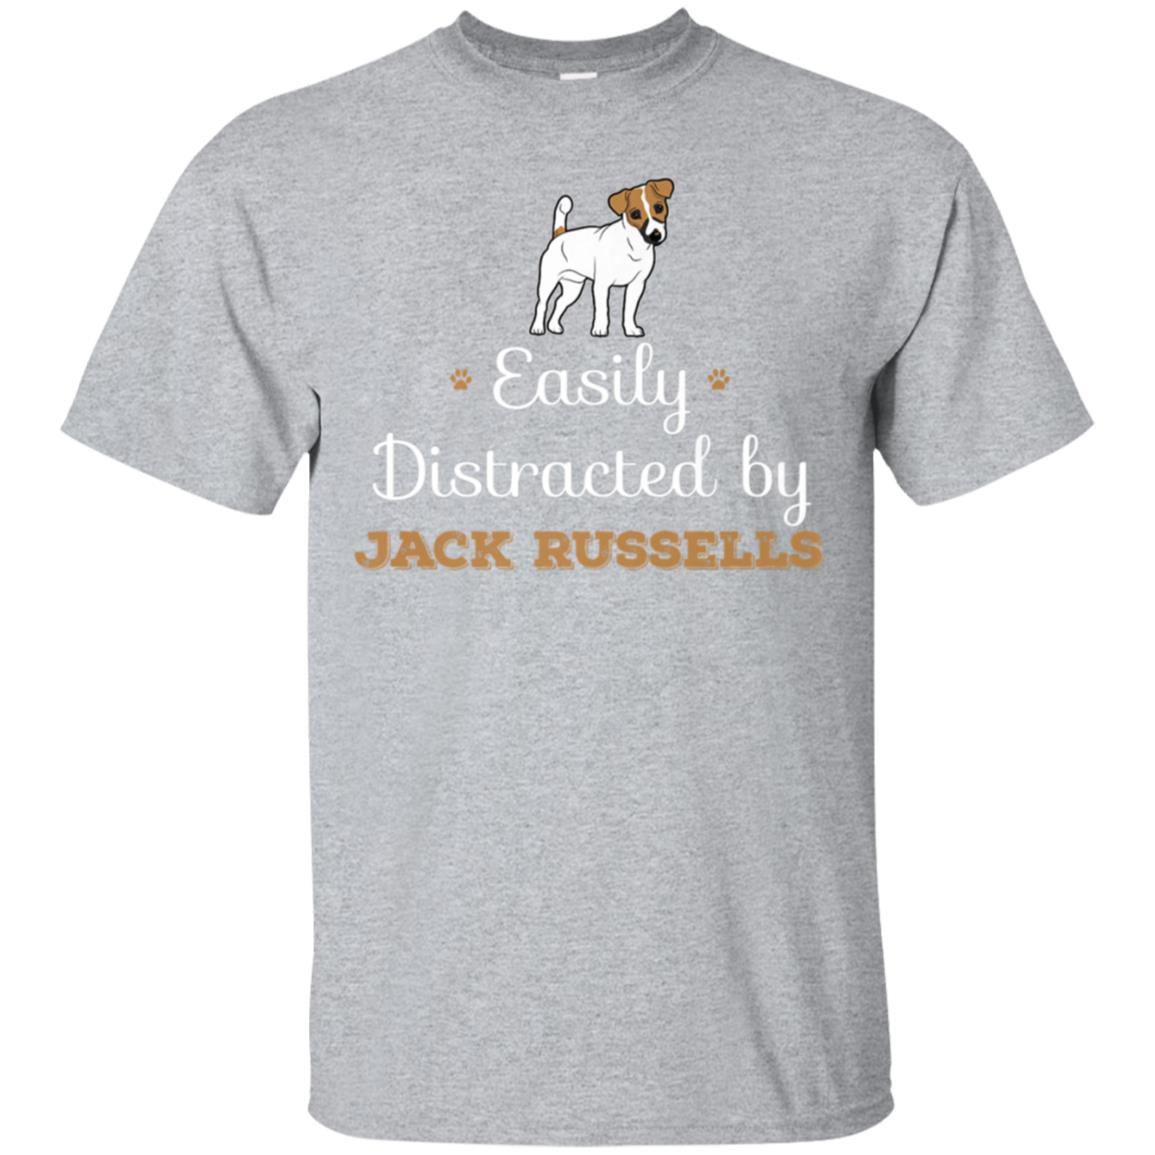 Easily Distracted by Jack Russell T-Shirt  Funny Gift Tee 99promocode